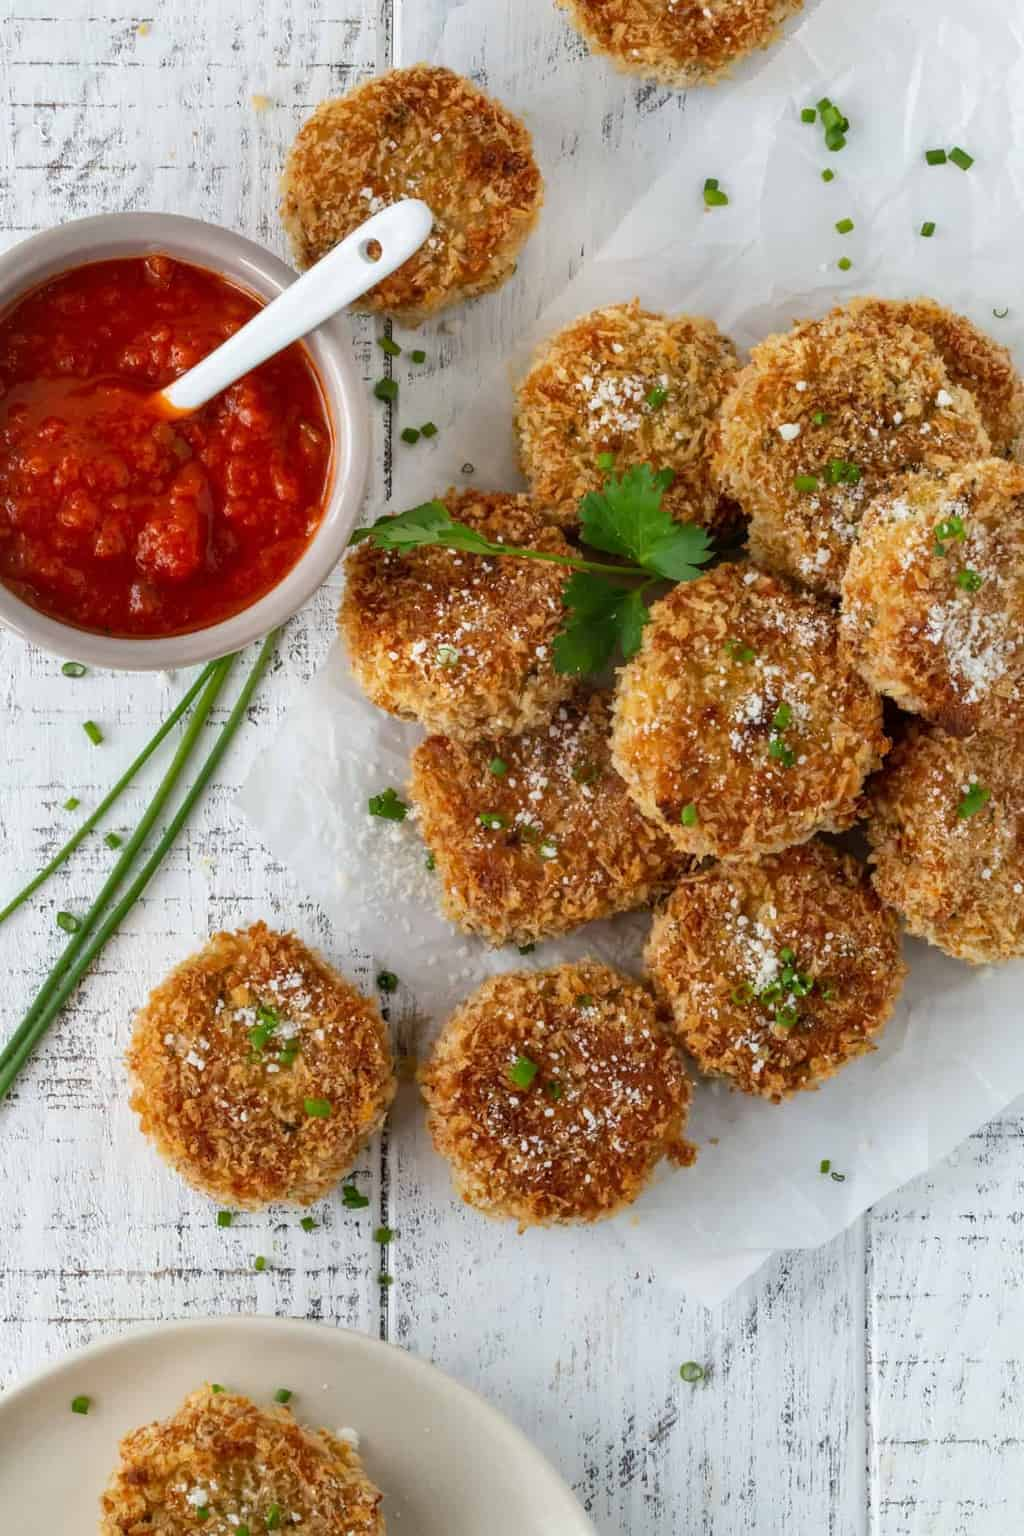 Fontina Chive Risotto Cakes scattered on white parchment paper and garnished with chopped chives and parmesan cheese. A bowl of marinara sauce is next to the risotto cakes.